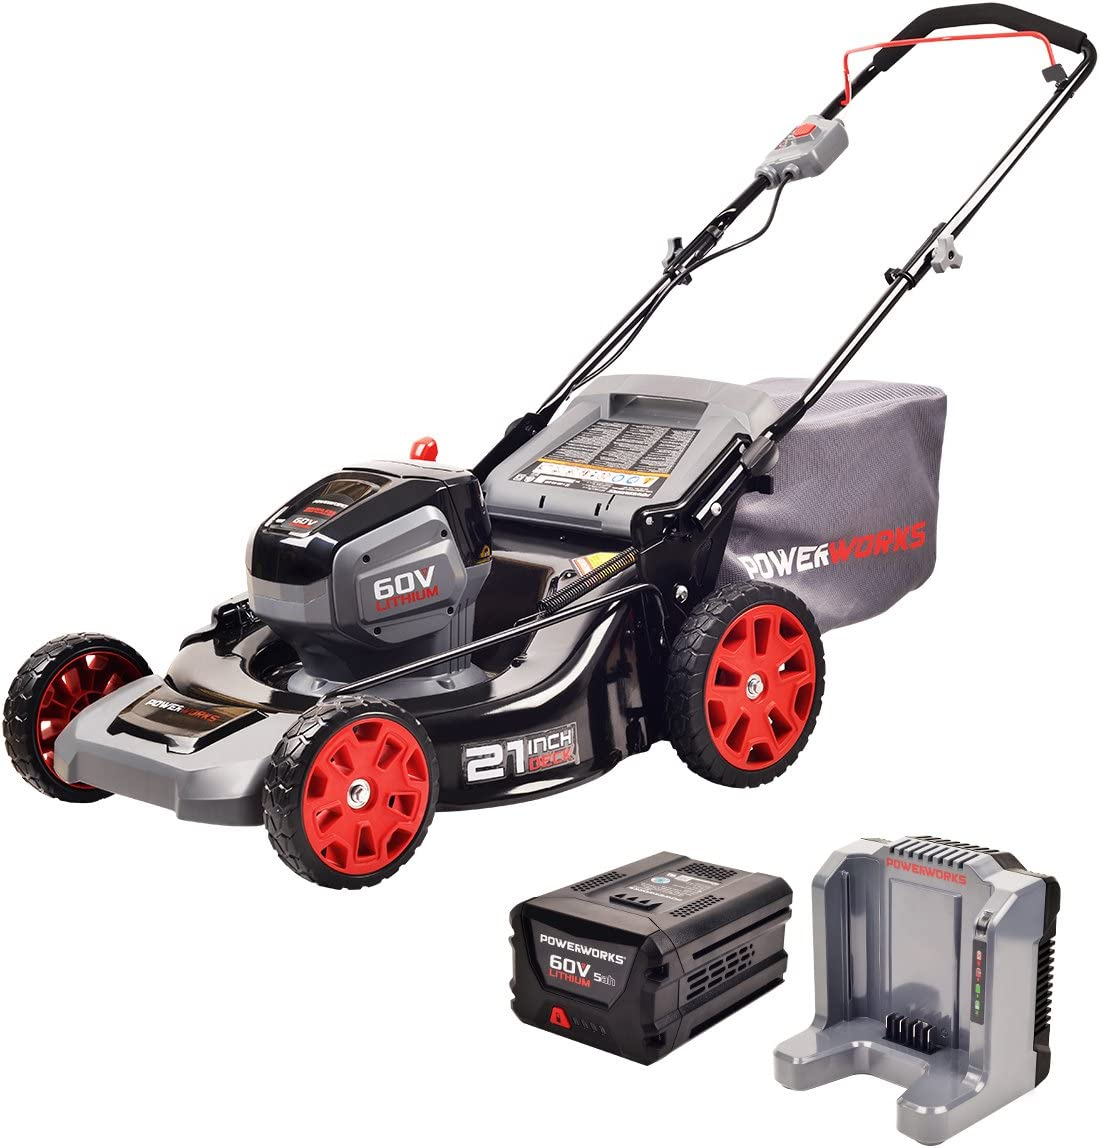 POWERWORKS 60V 21-inch Brushless HP Mower, 5Ah Battery and Charger Included MO60L513PW